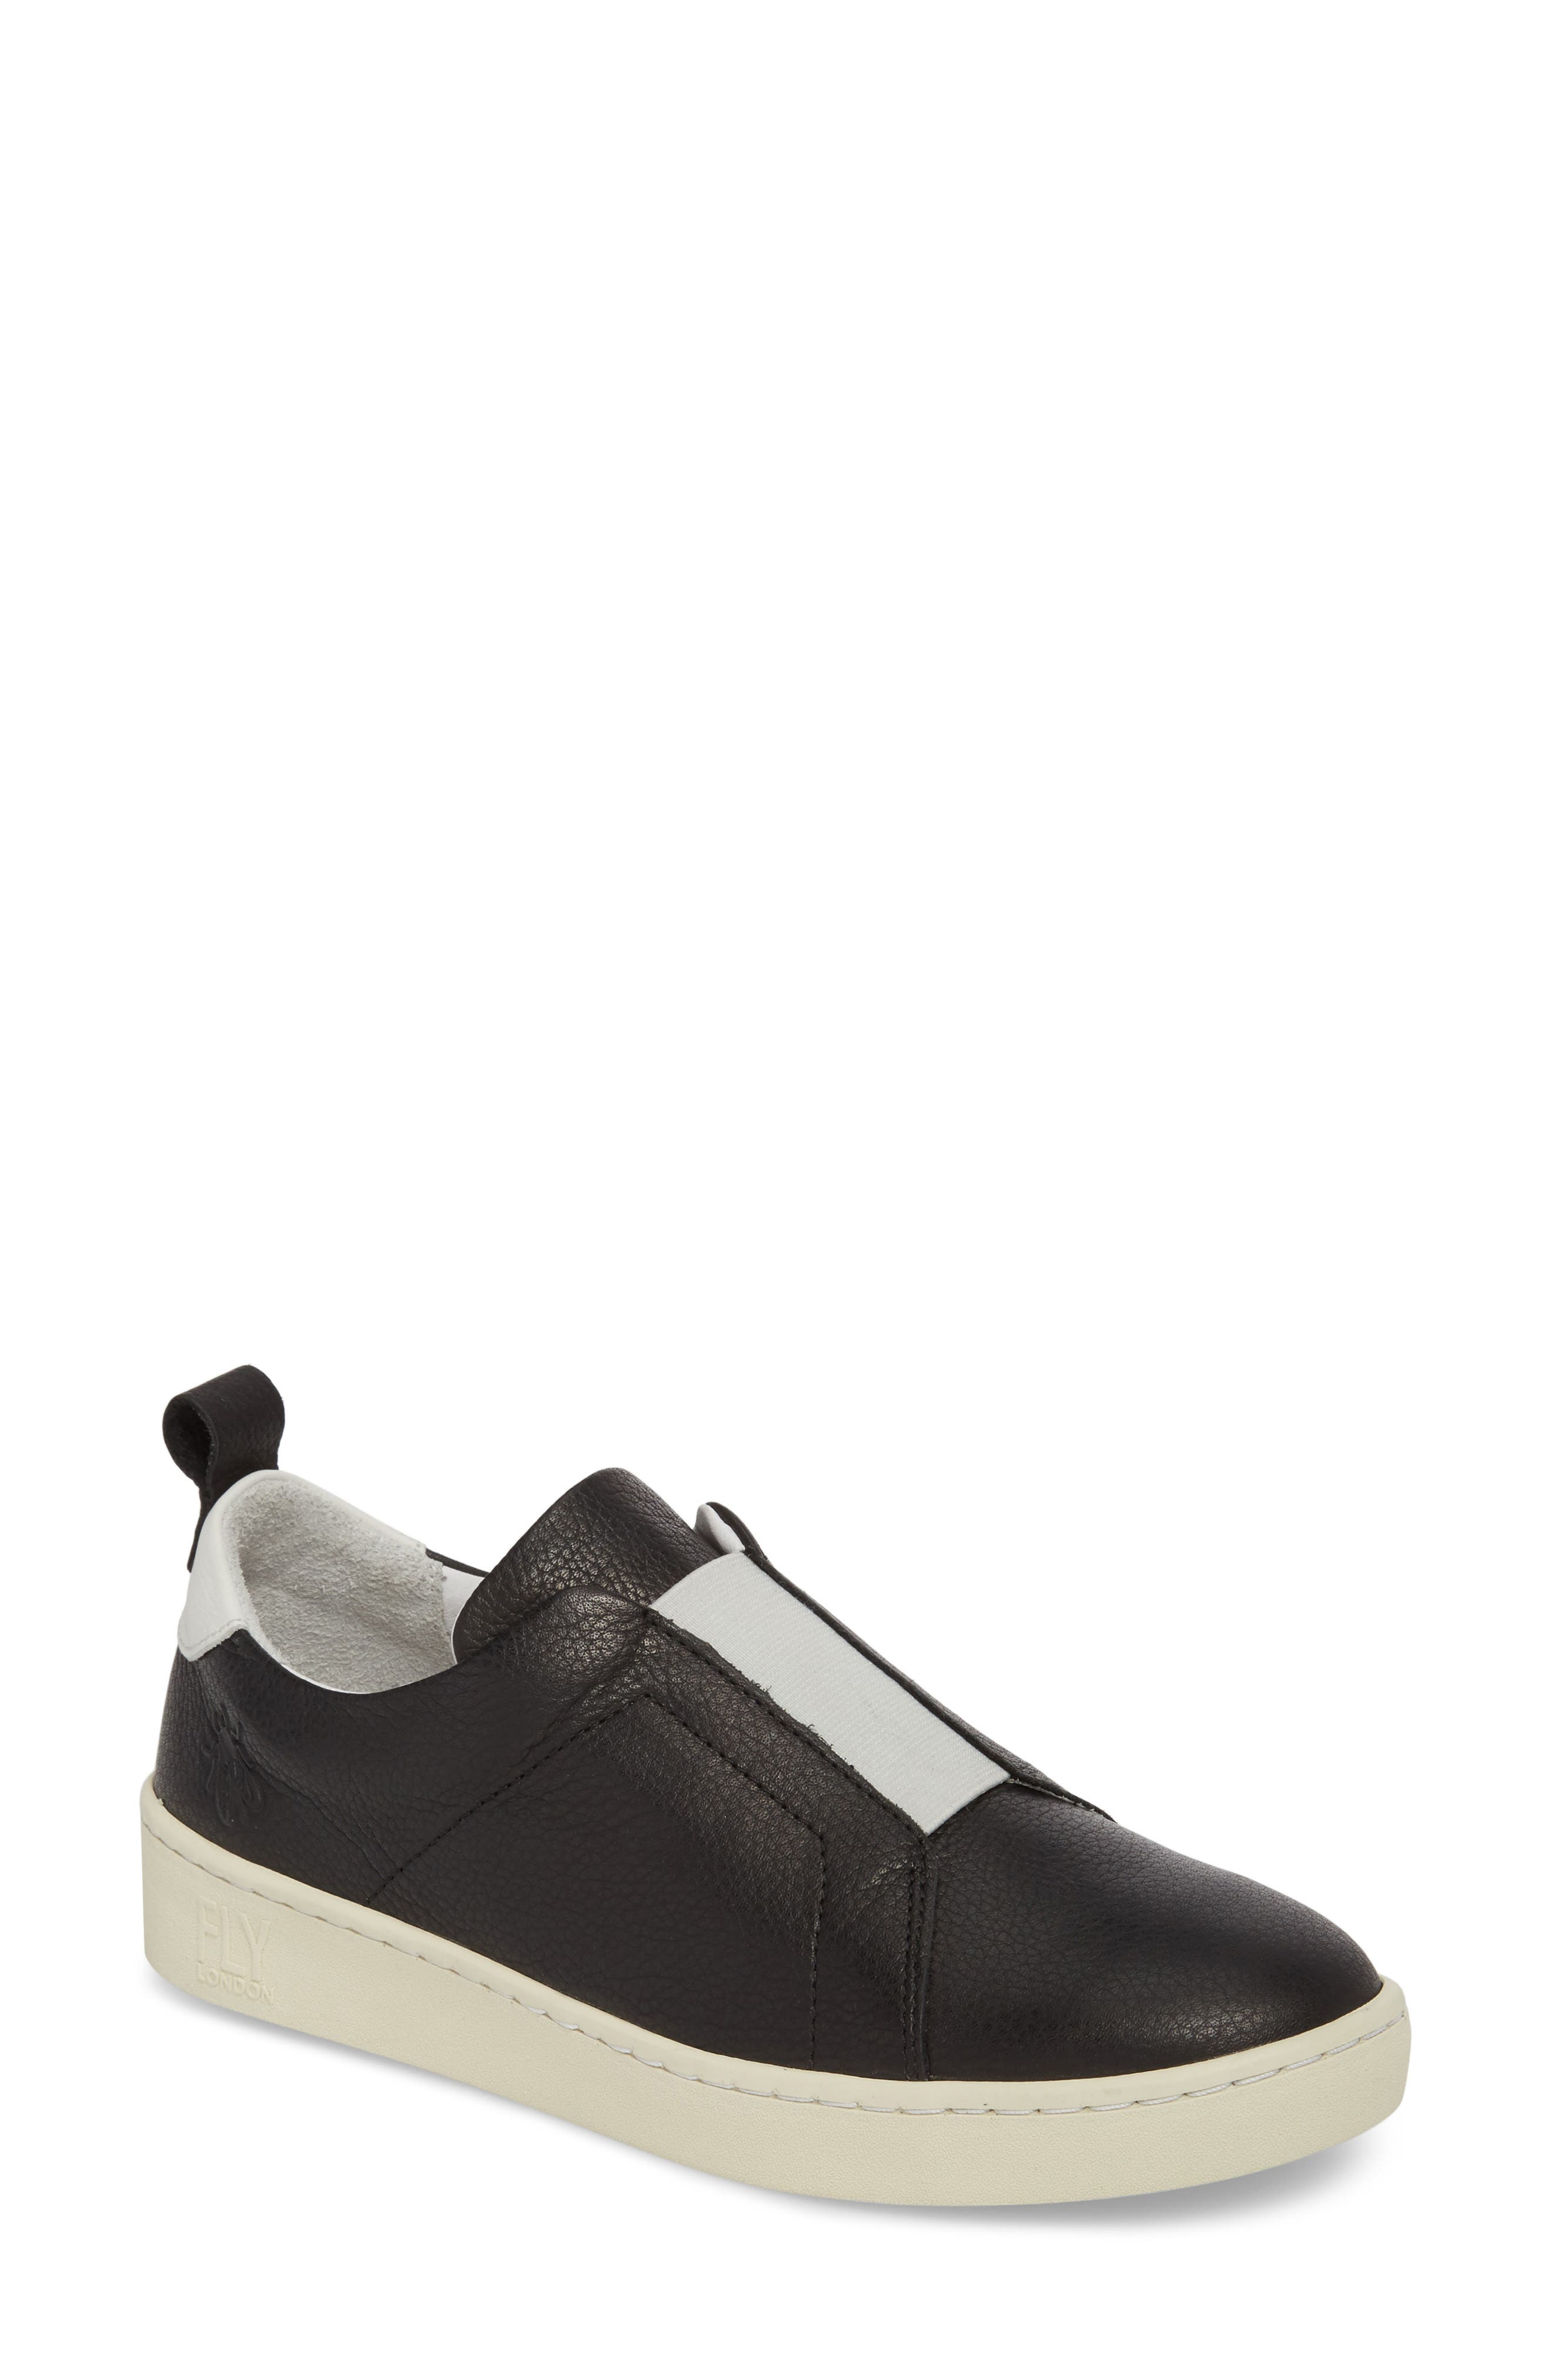 Mutt Slip-On Sneaker,                             Main thumbnail 1, color,                             BLACK BRITO LEATHER